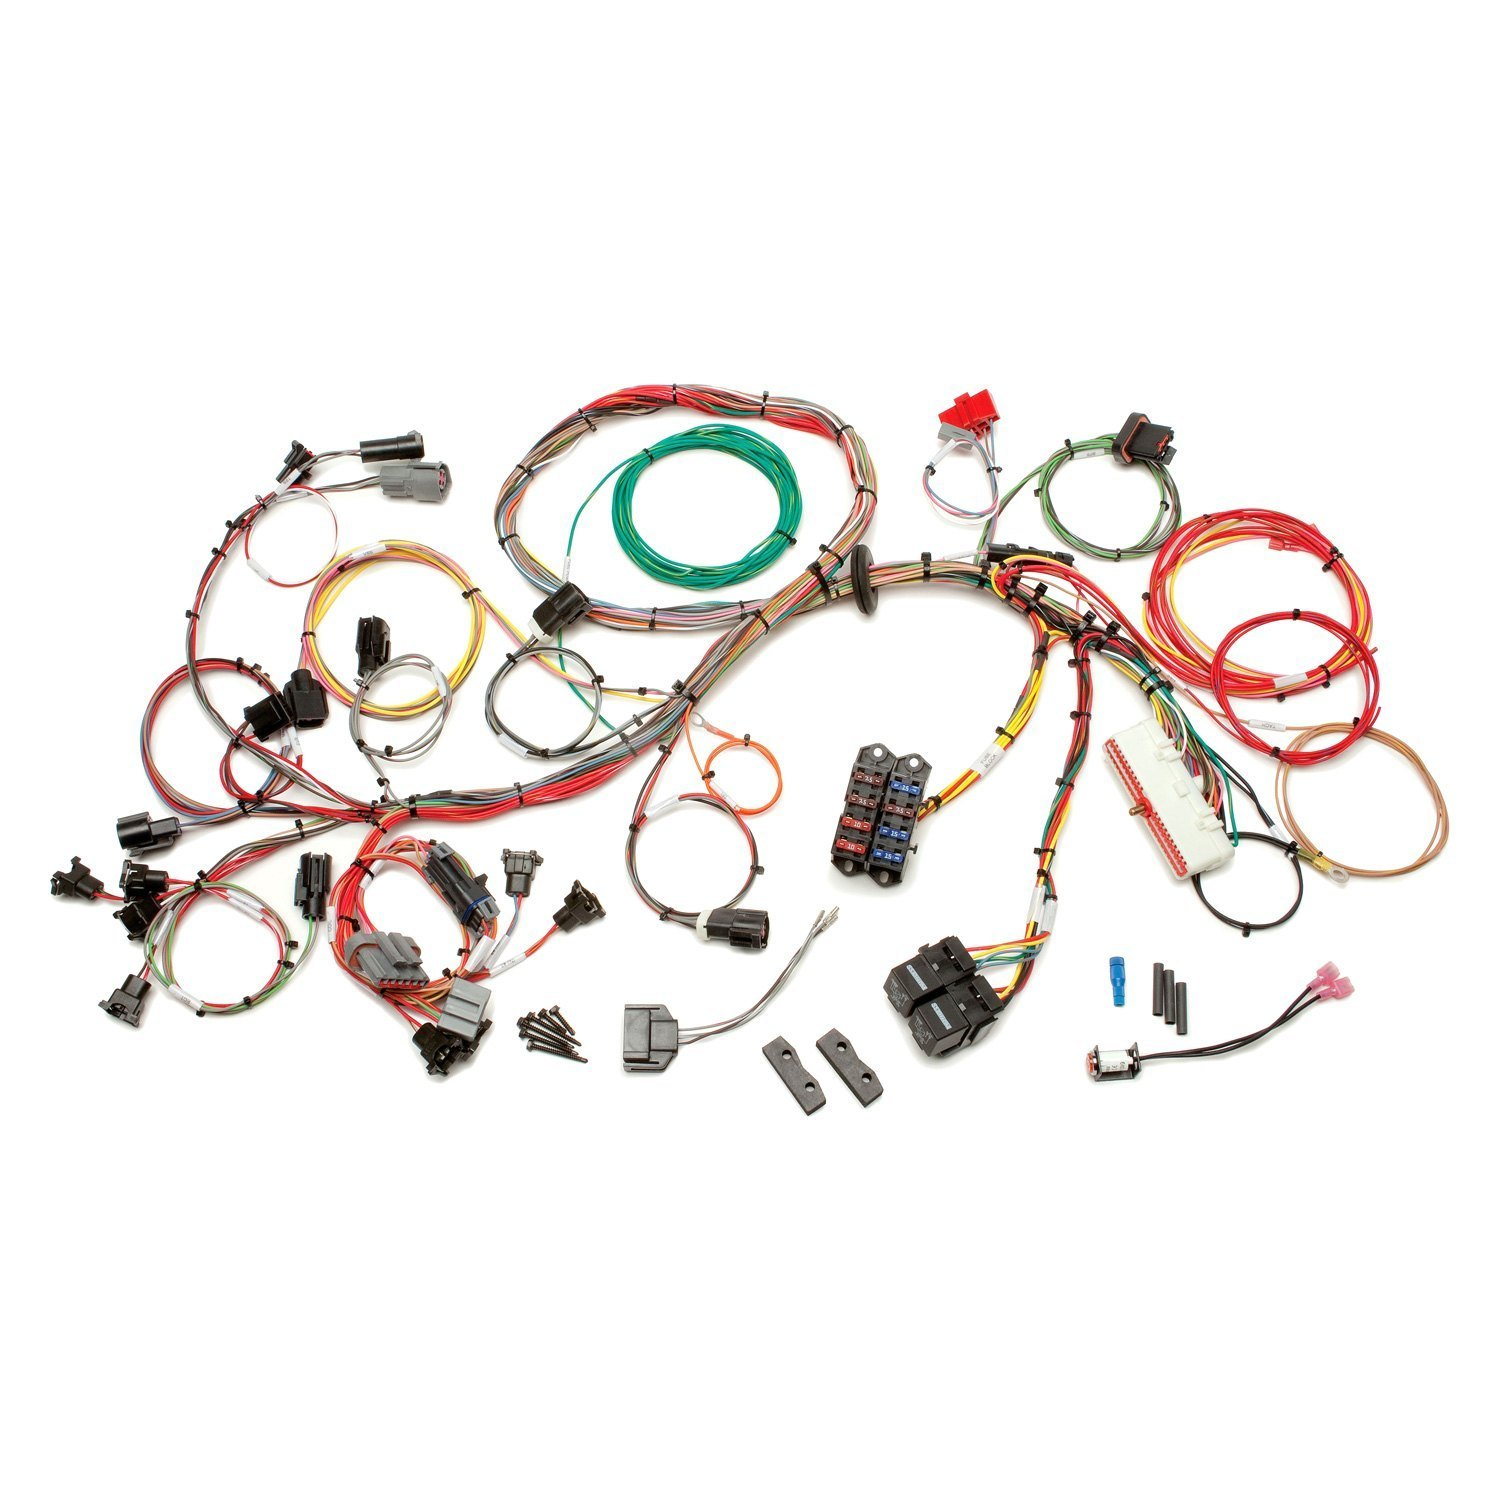 S10 Wiring Harness Painless Wire Data Schema 1993 Mustang Chassi Performance U00ae 60511 Fuel Injection Diagram 2001 Chevy